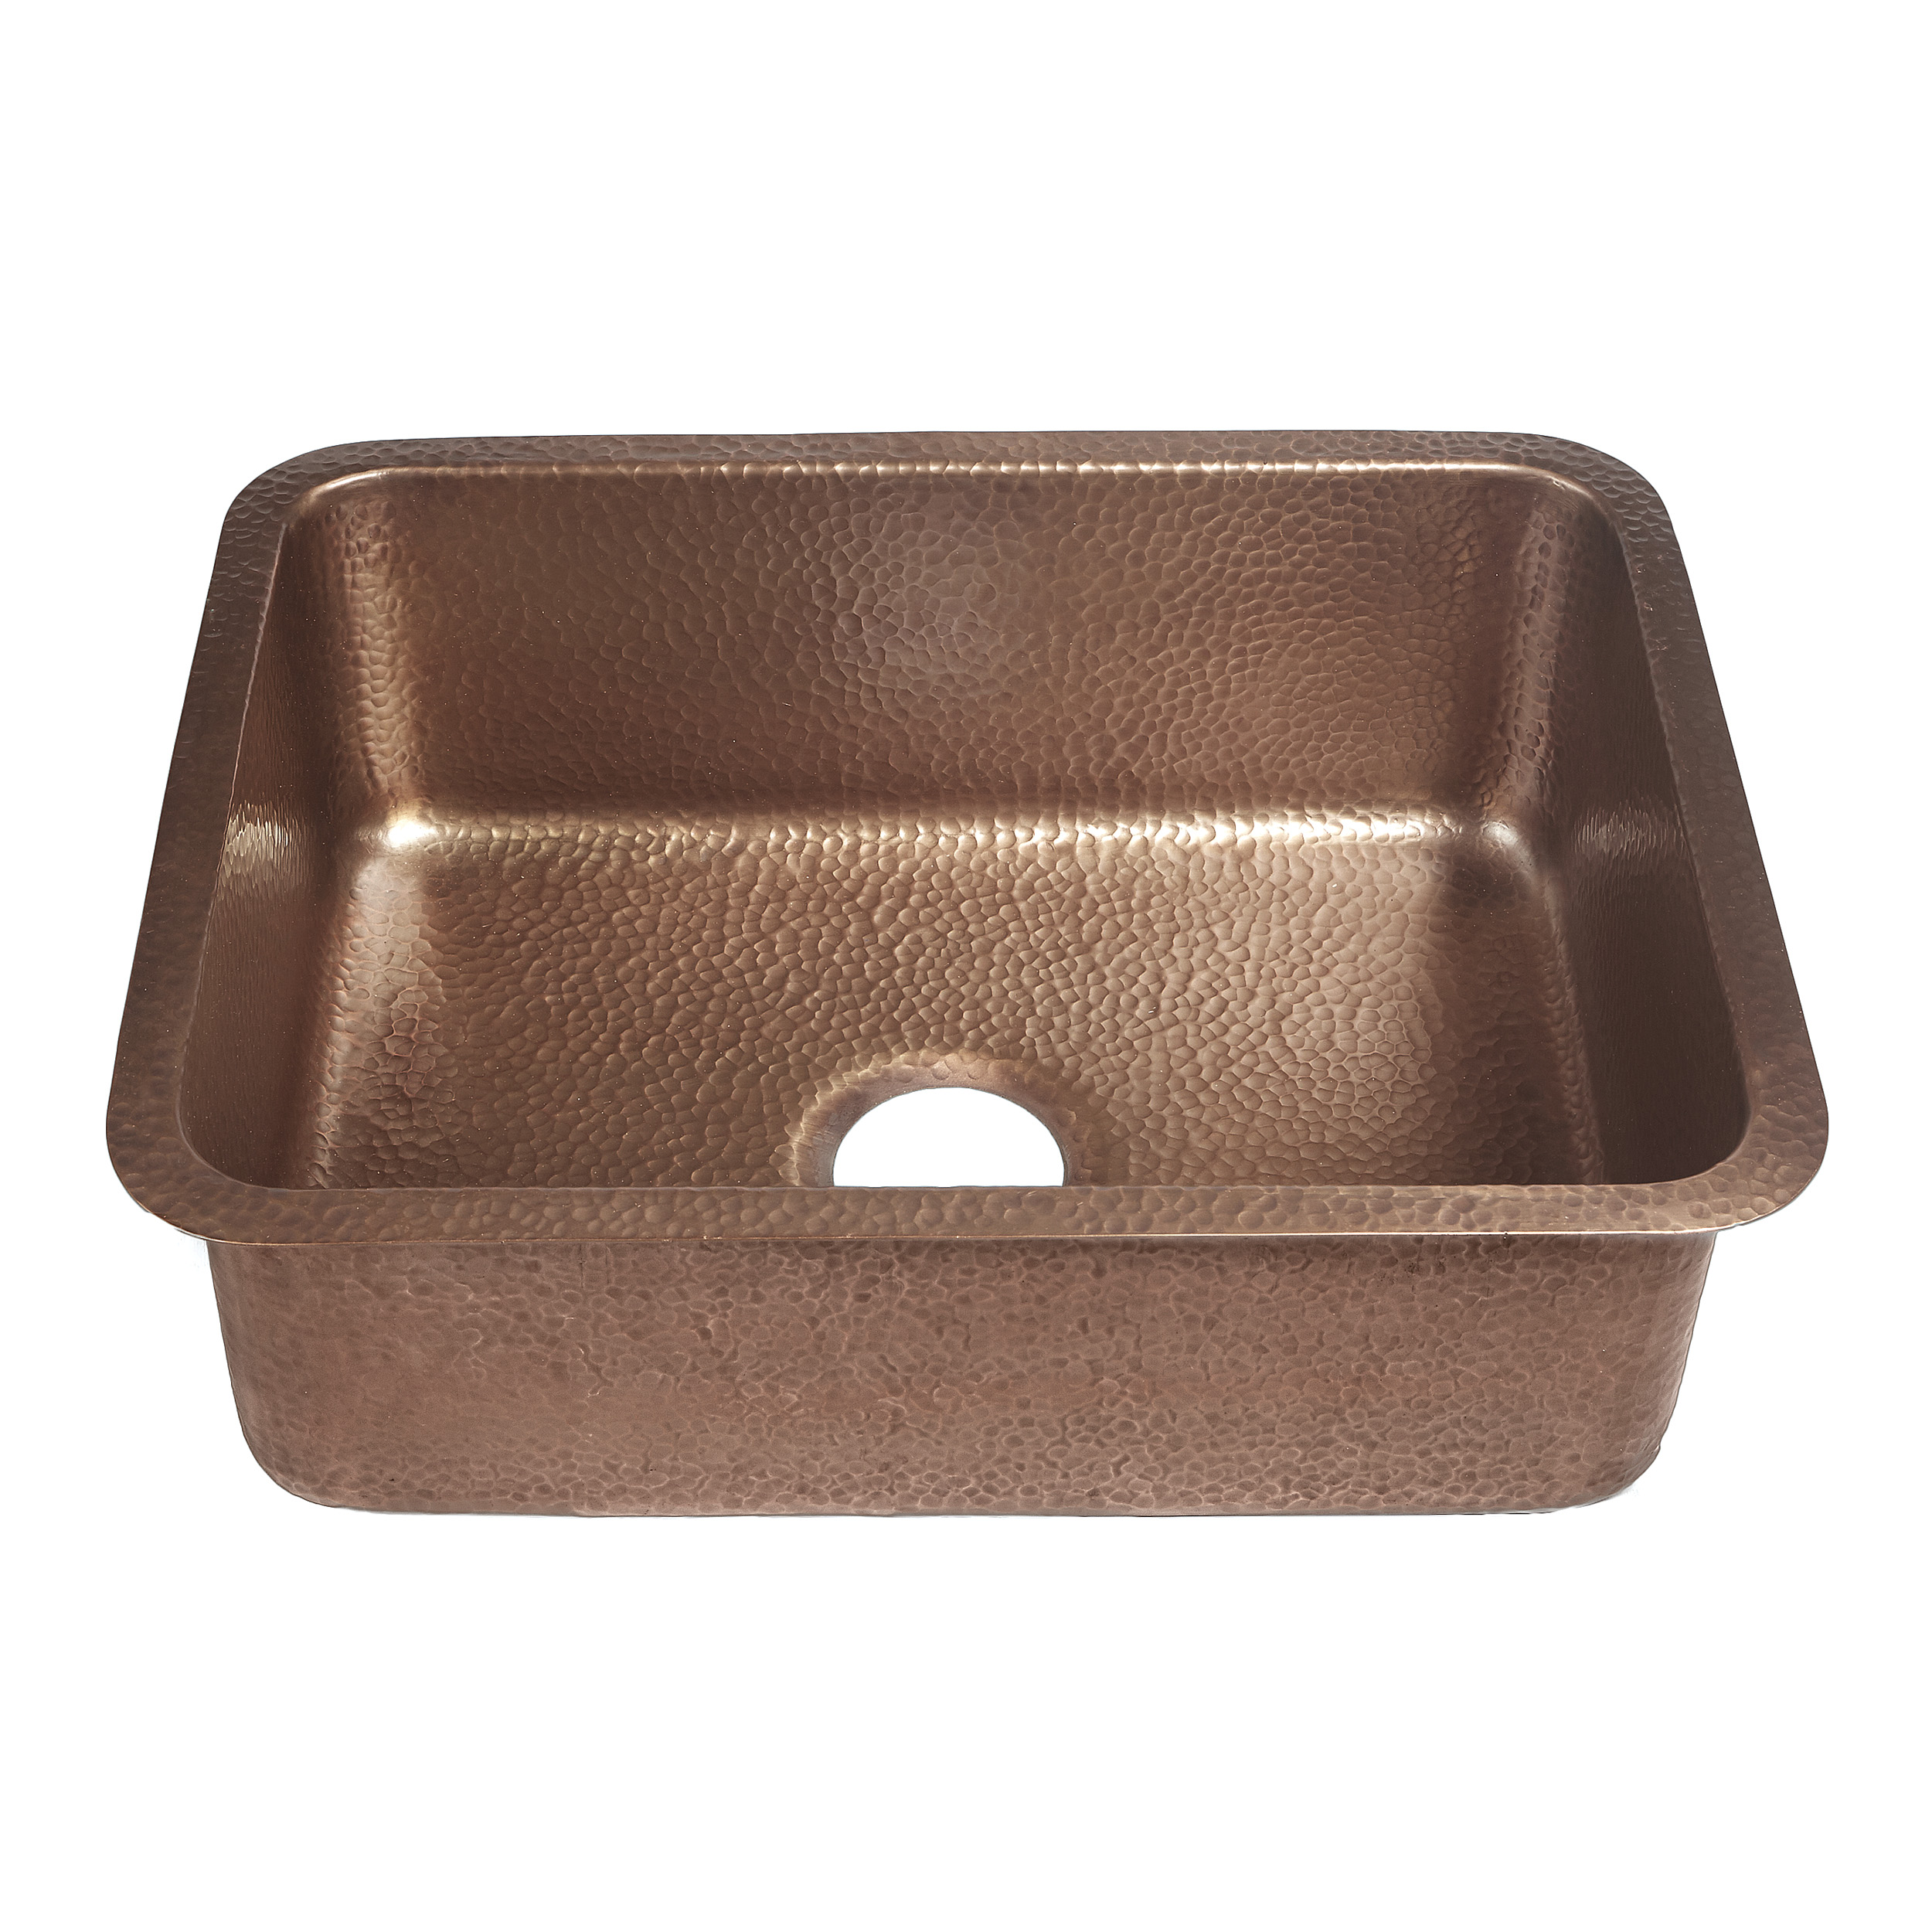 farmhouse kitchens delight its sink suitable l time you hammered brings this make grand for and kitchen copper larger size fiona each lustrous depth generous gourmet of patina the use it